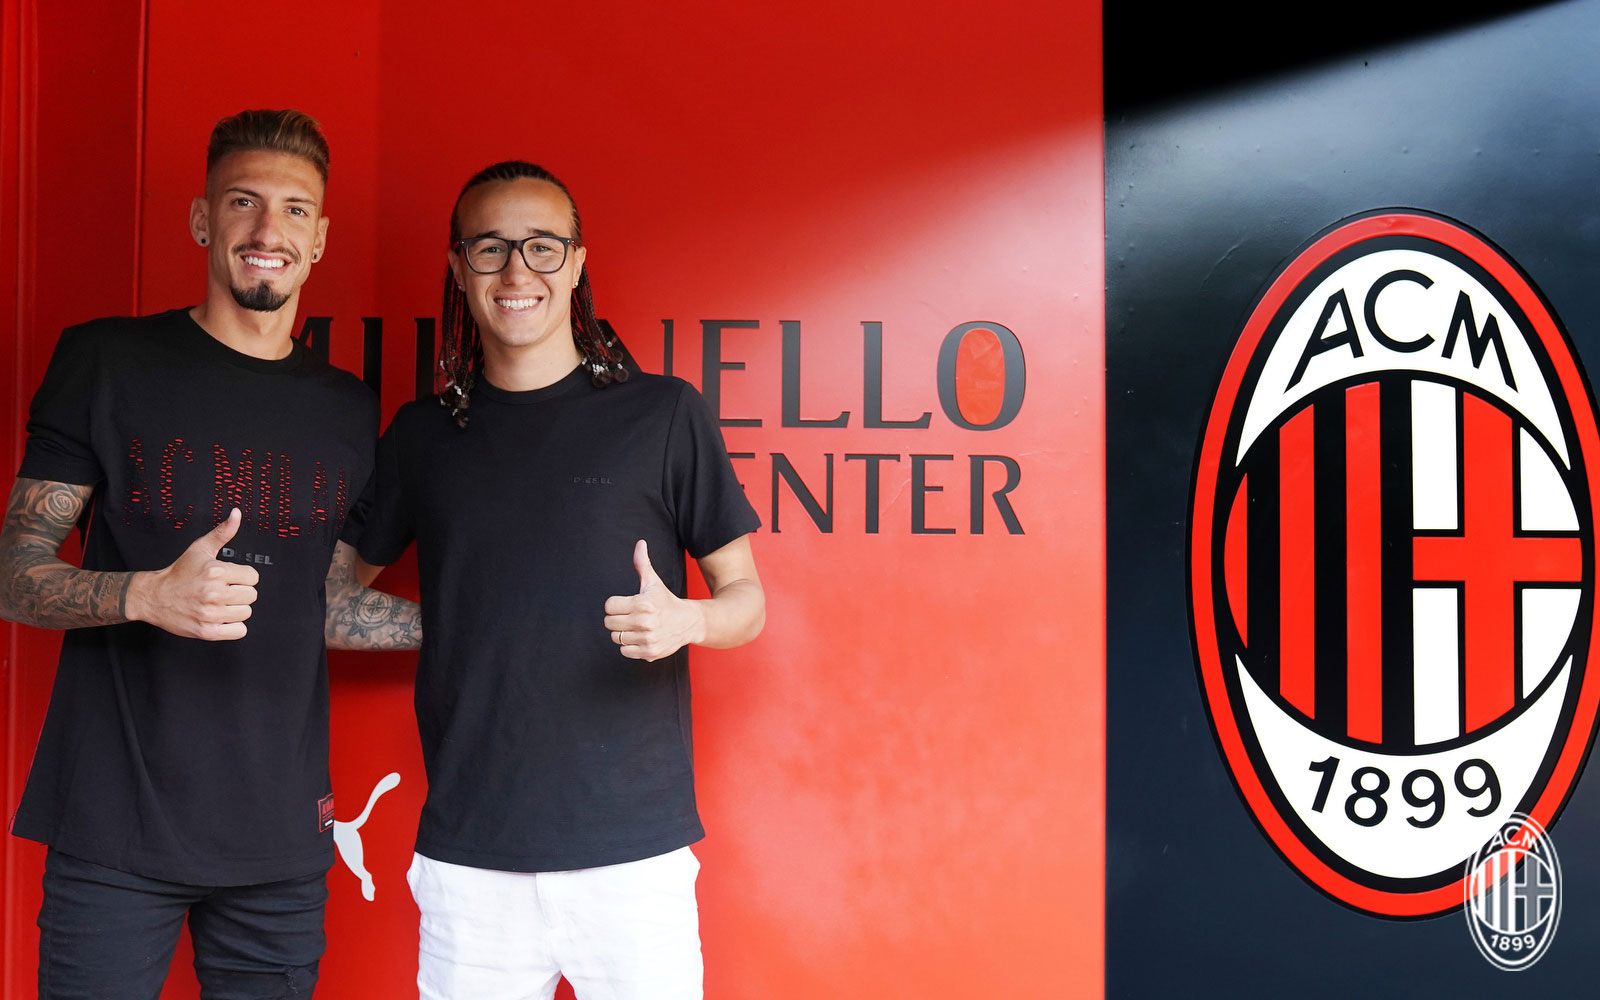 Samu Castillejo Diego Laxalt  at training center Milanello on August 17, 2018. (@acmilan.com)